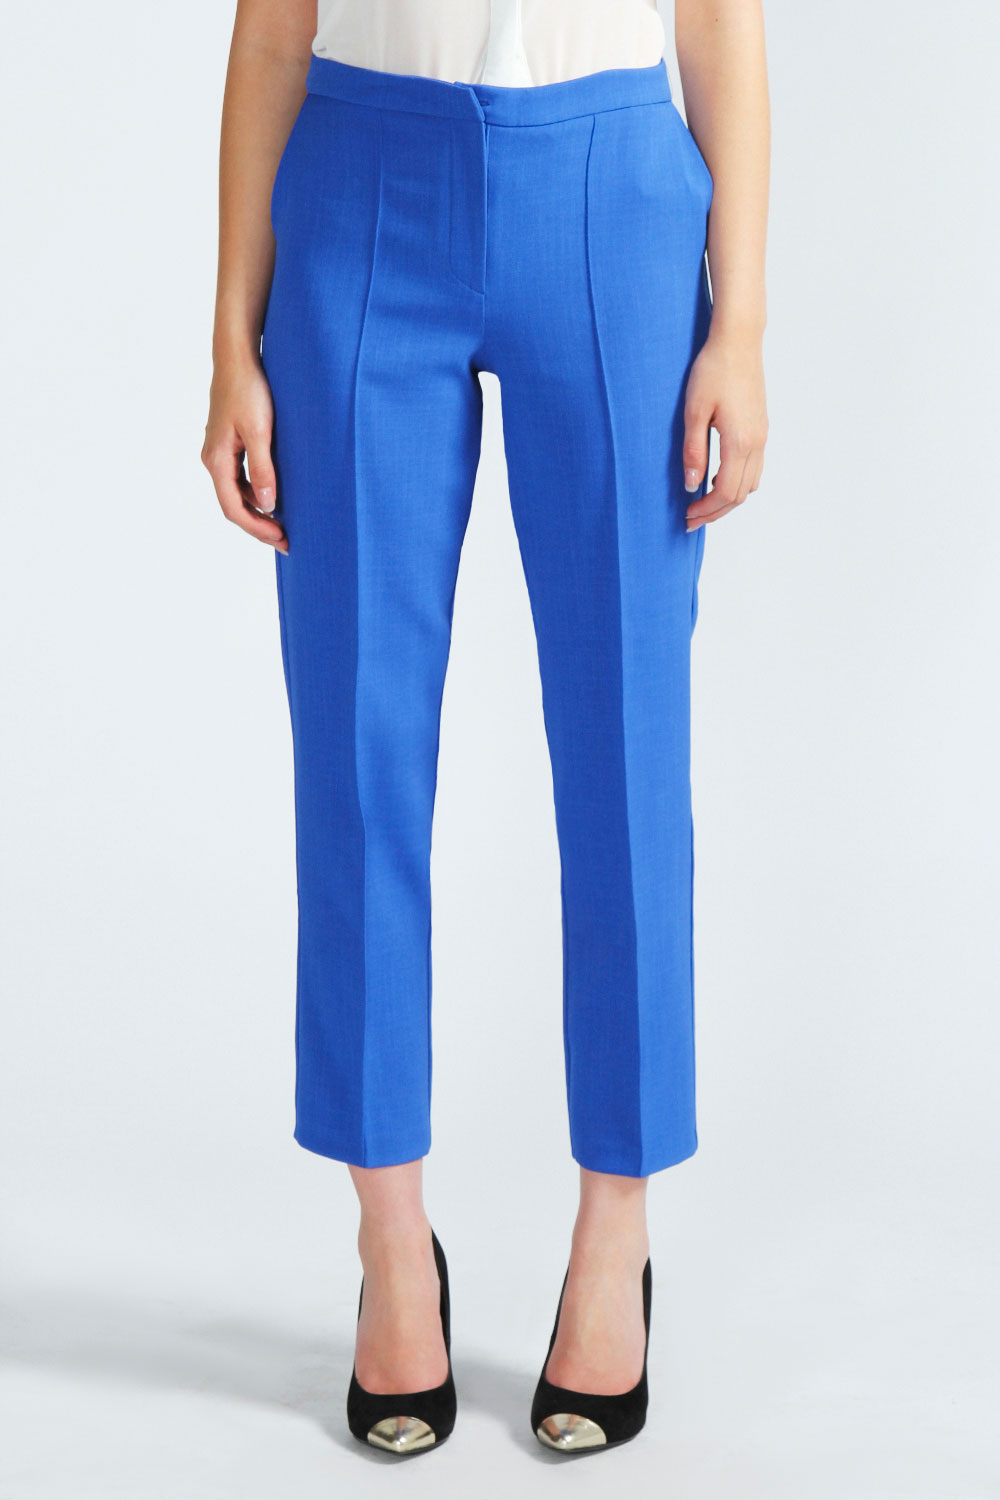 Tapered Trousers For Women  Tapered Pants  Tu clothing